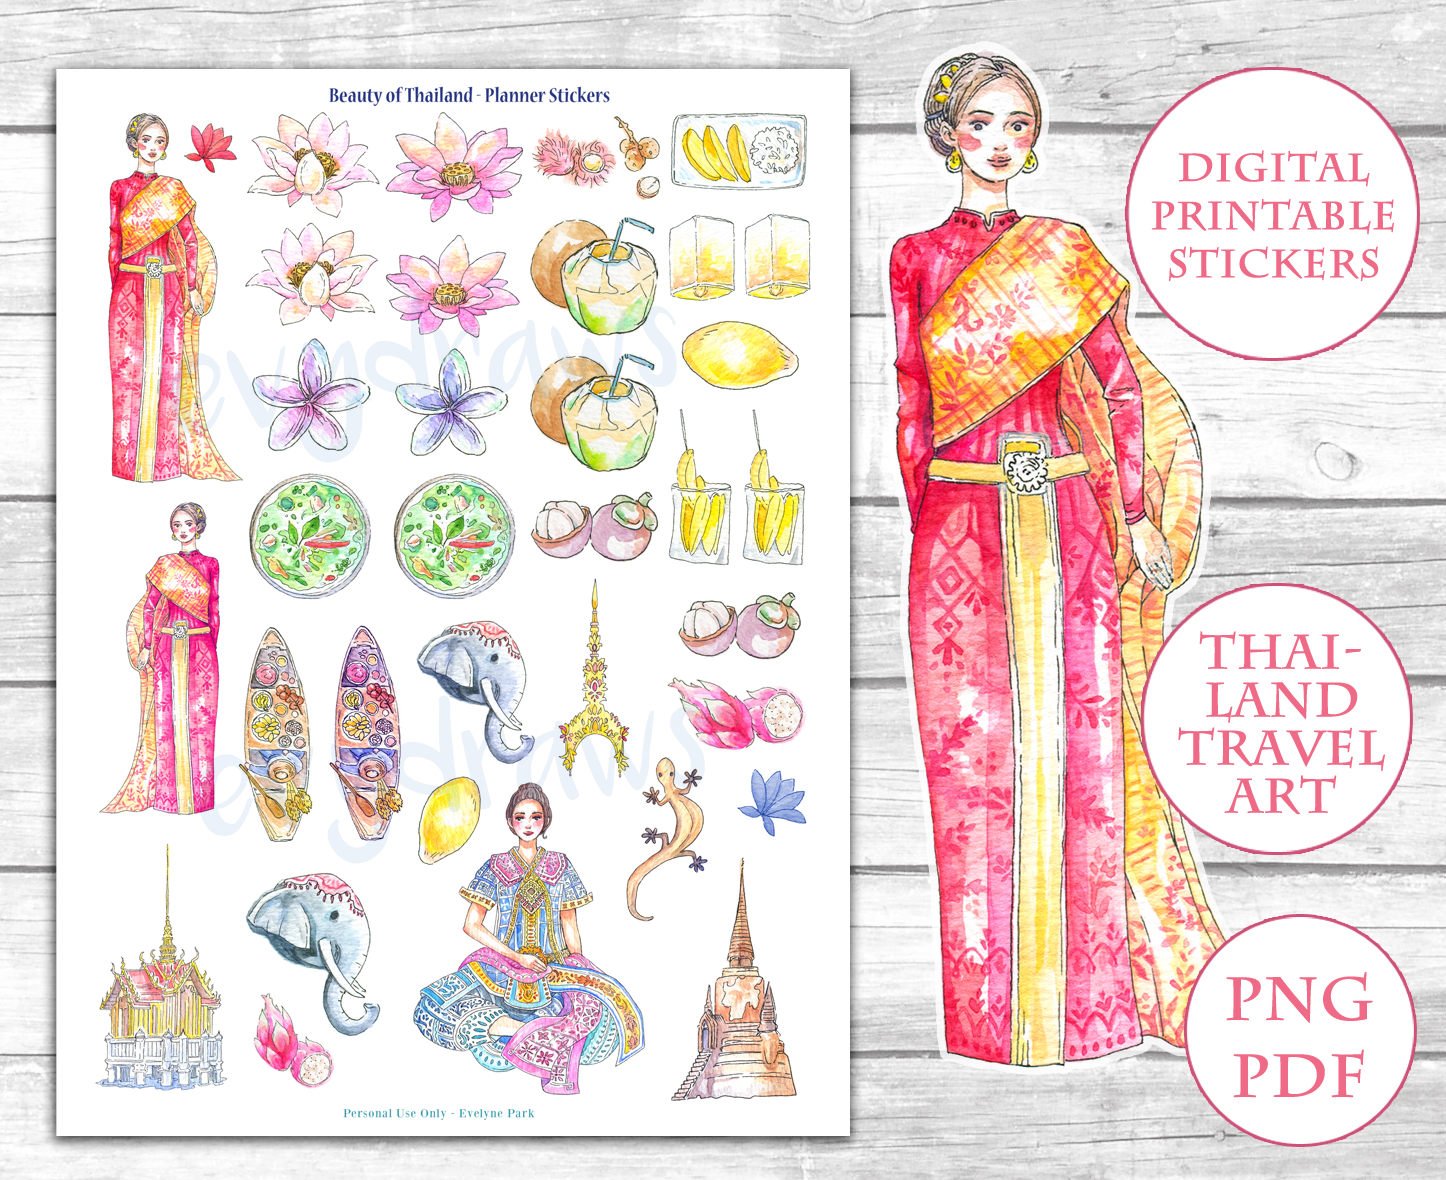 Printable travel stickers, Thailand, Beauty of Thai Culture, Handdrawn watercolor sticker printable   Free sticker printable page on my blog!